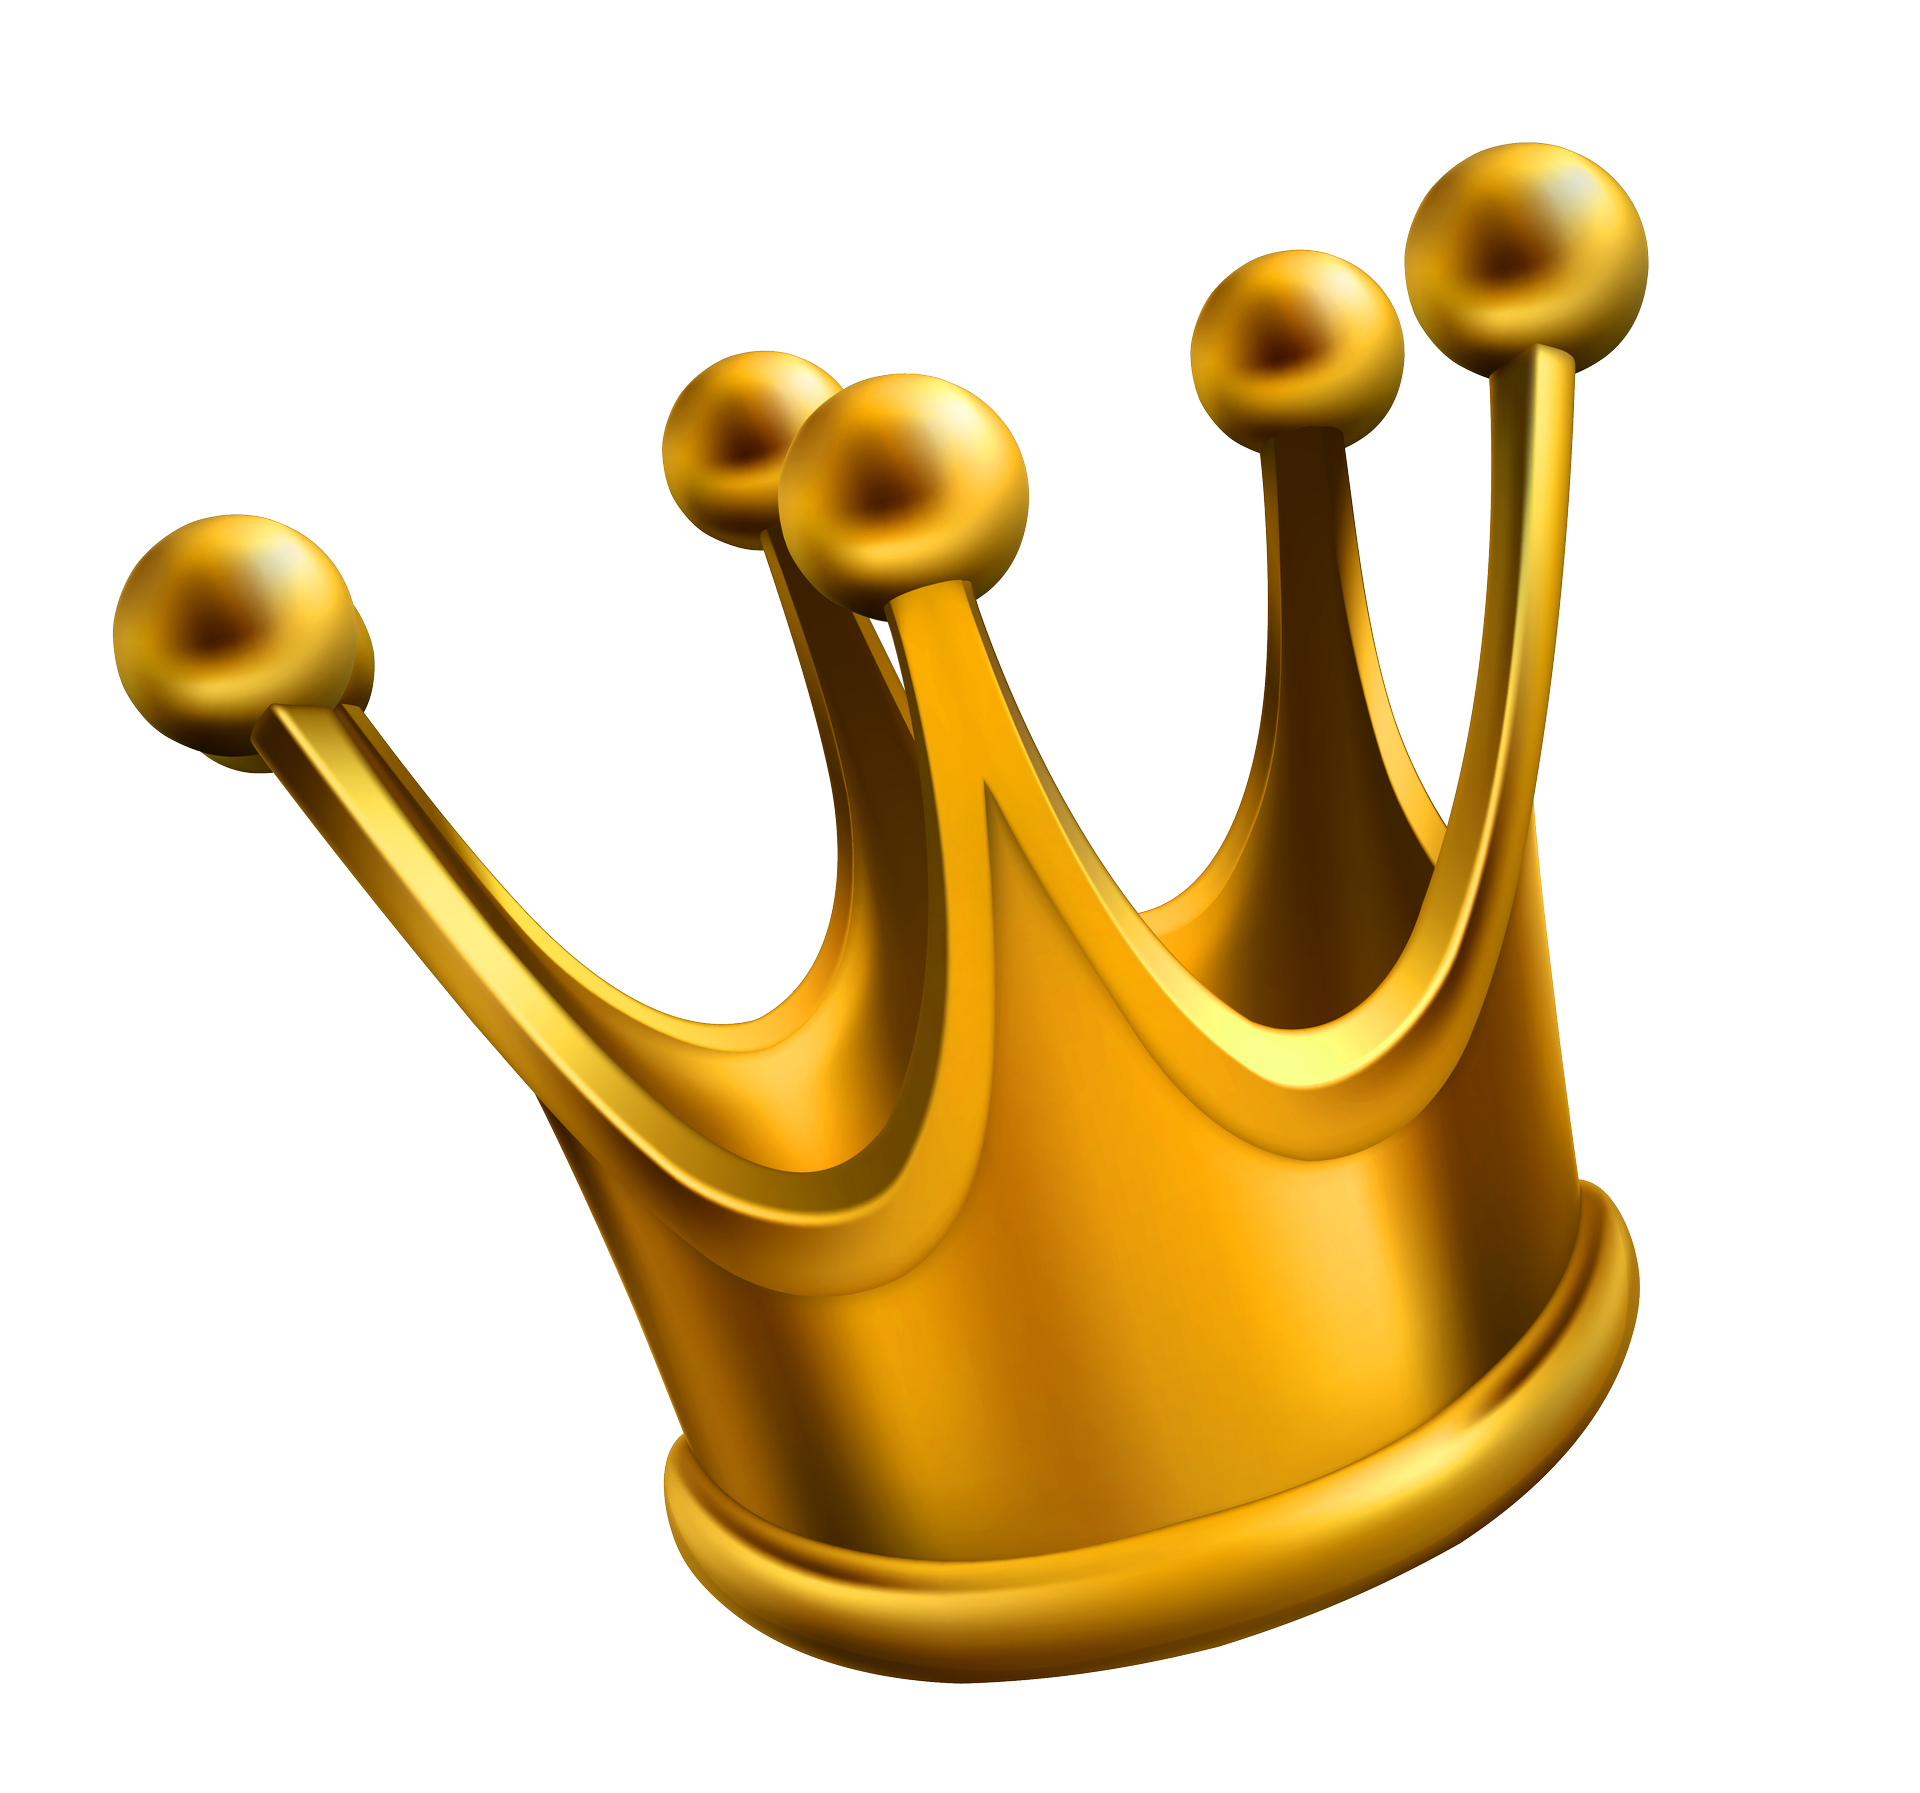 Famous with crown clipart png royalty free stock Crown Clipart at GetDrawings.com | Free for personal use Crown ... png royalty free stock